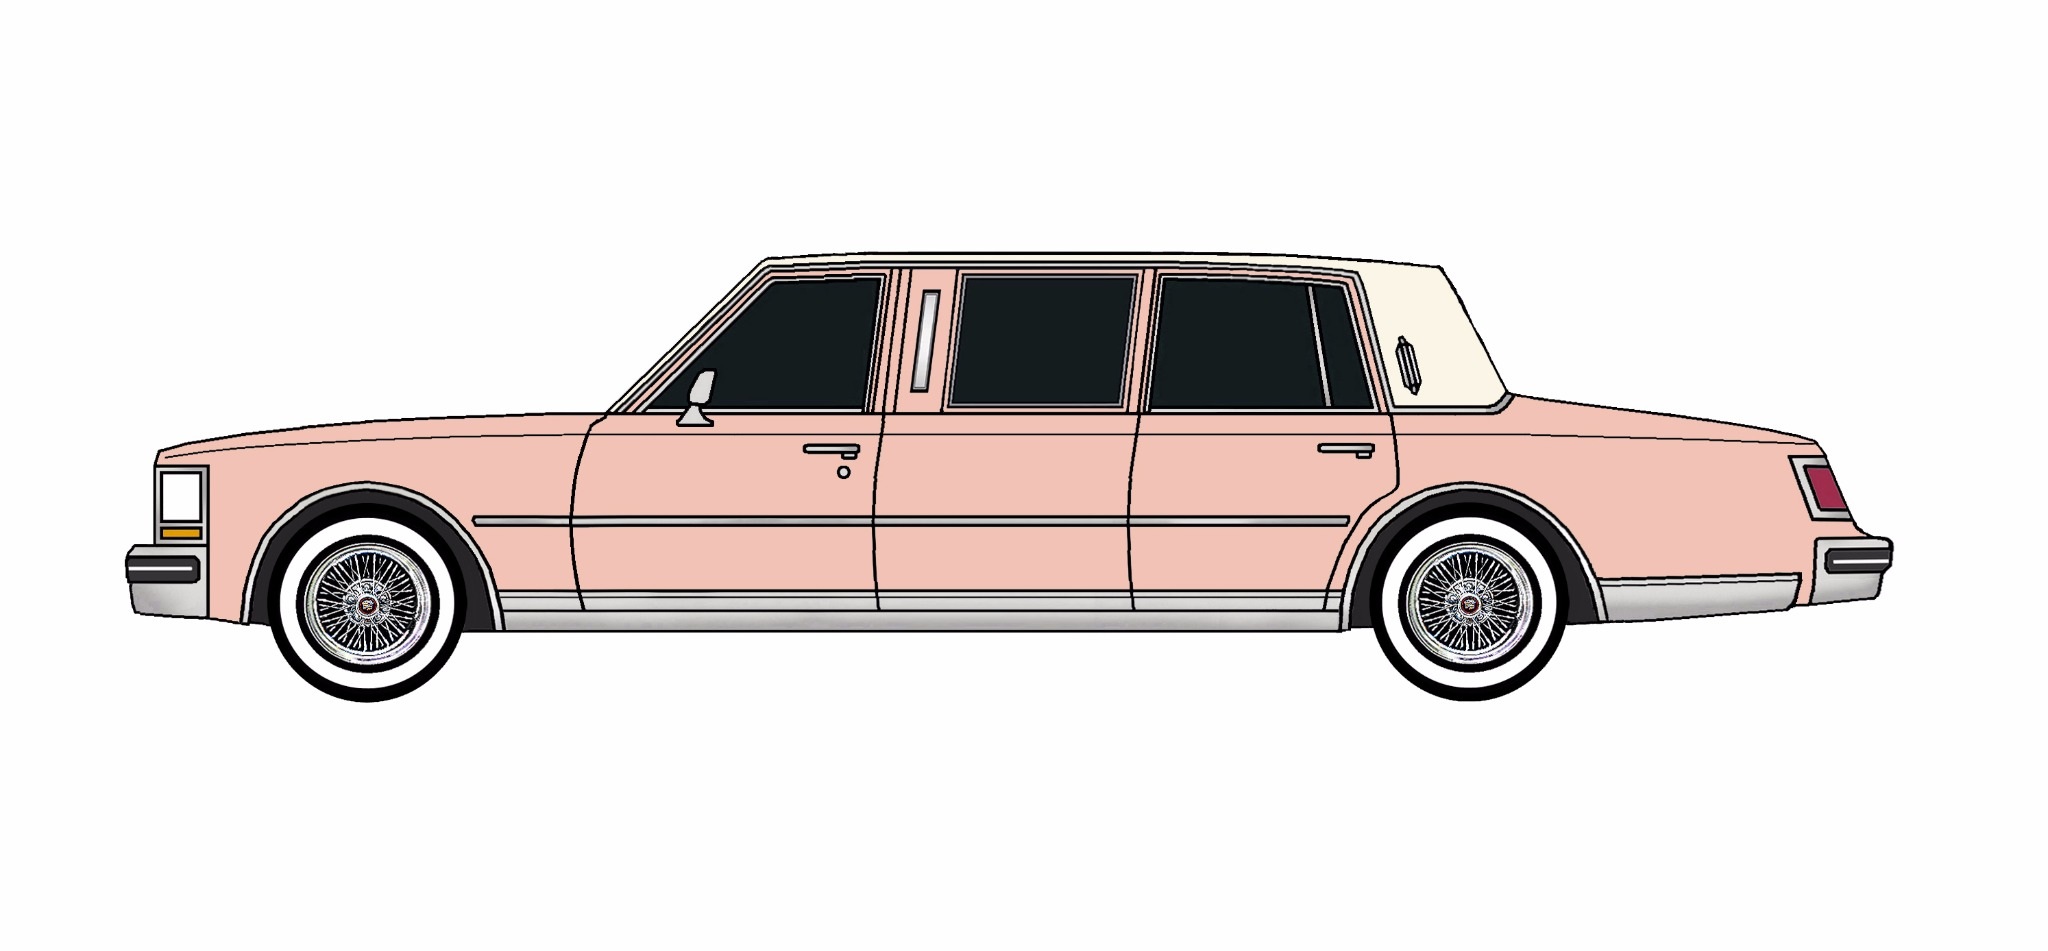 1978 Cadillac Seville Limo ROSE PINK